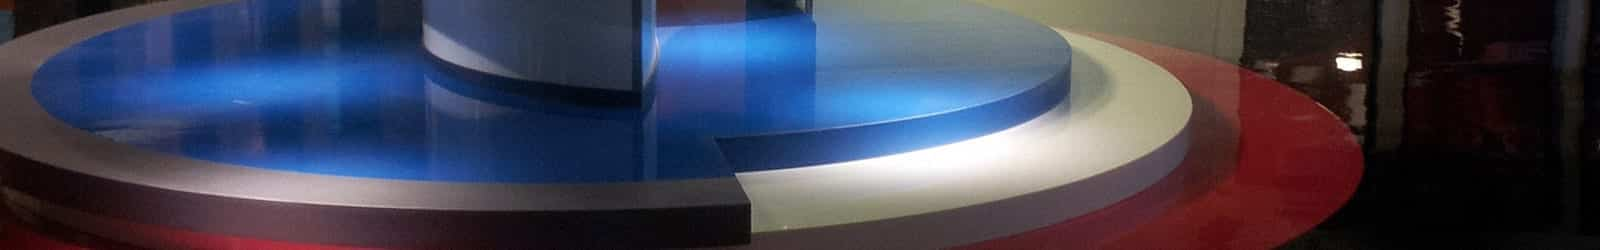 Commercial Grade Decorative Epoxy Floor Coating Materials in multiple colors including red epoxy floor, white concrete epoxy coating and blue epoxy finished floor. Decorative commercial floor coatings include metallic stained concrete, epoxy flake floor coating systems, and high impact resistance with epoxy quartz floor coating systems using colored quartz aggregates and chemical resistant epoxy with high traffic urethane finishes.